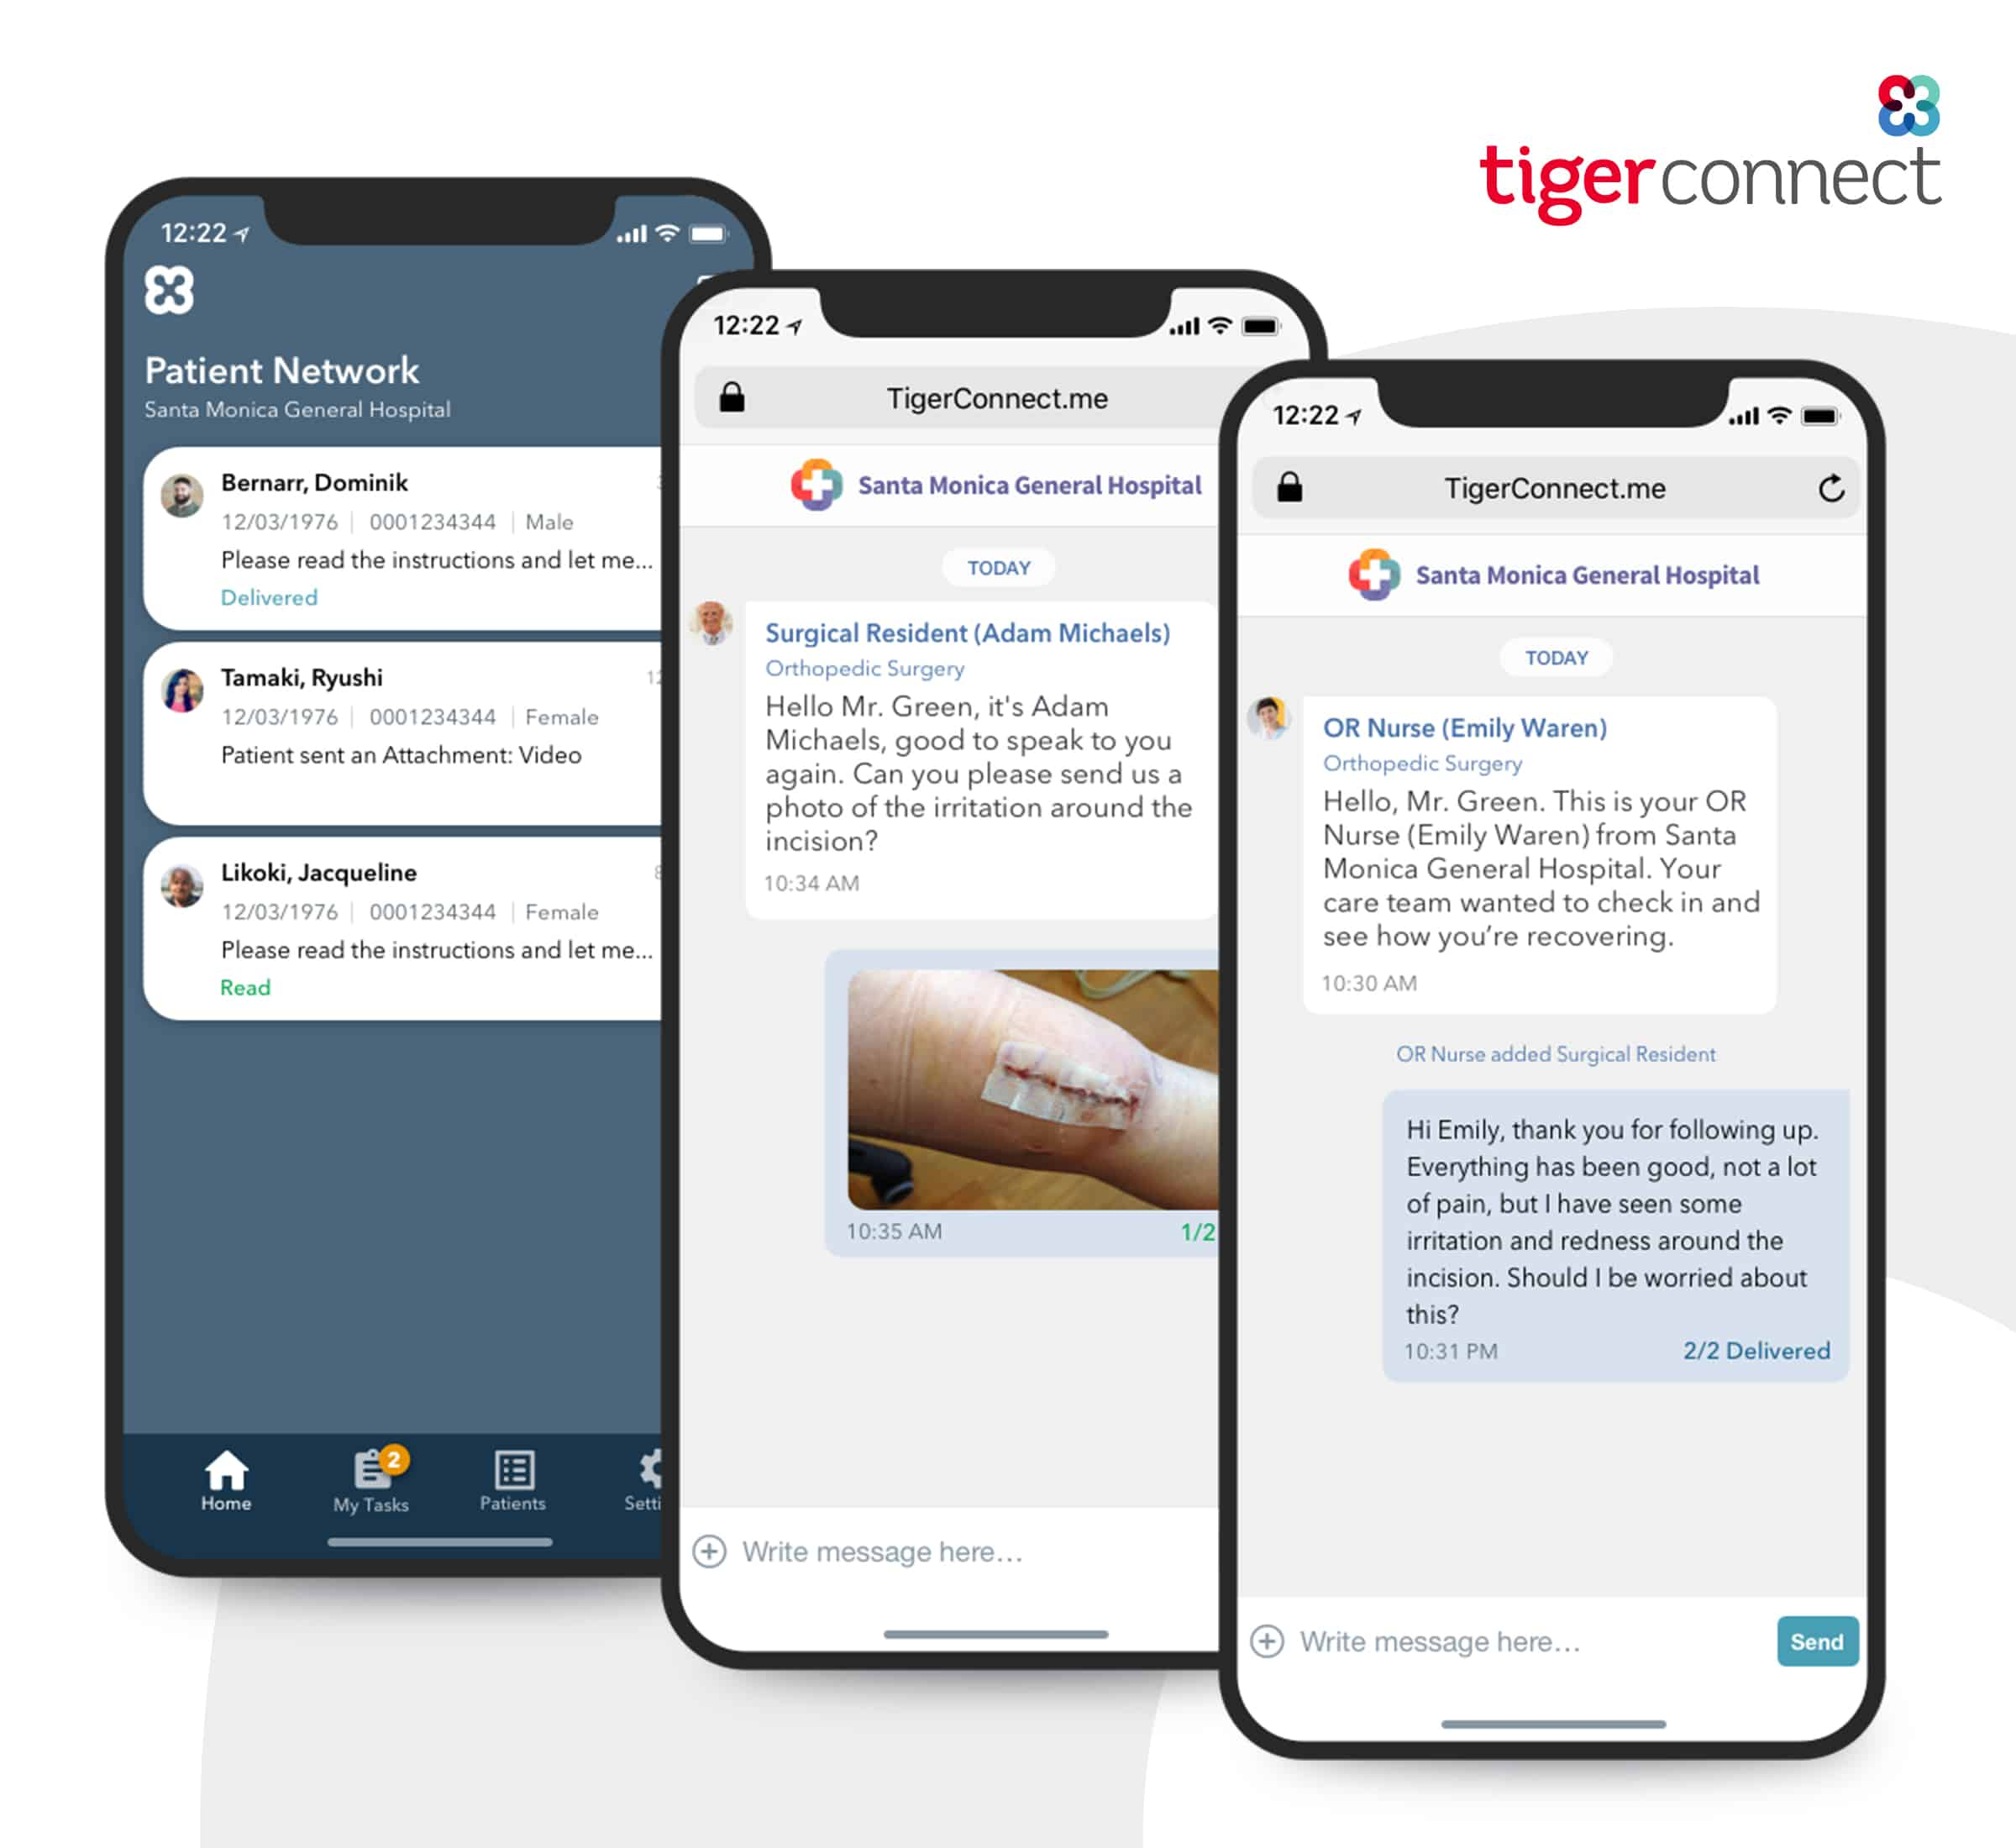 TigerConnect to Unveils TigerTouch at HIMSS 2019